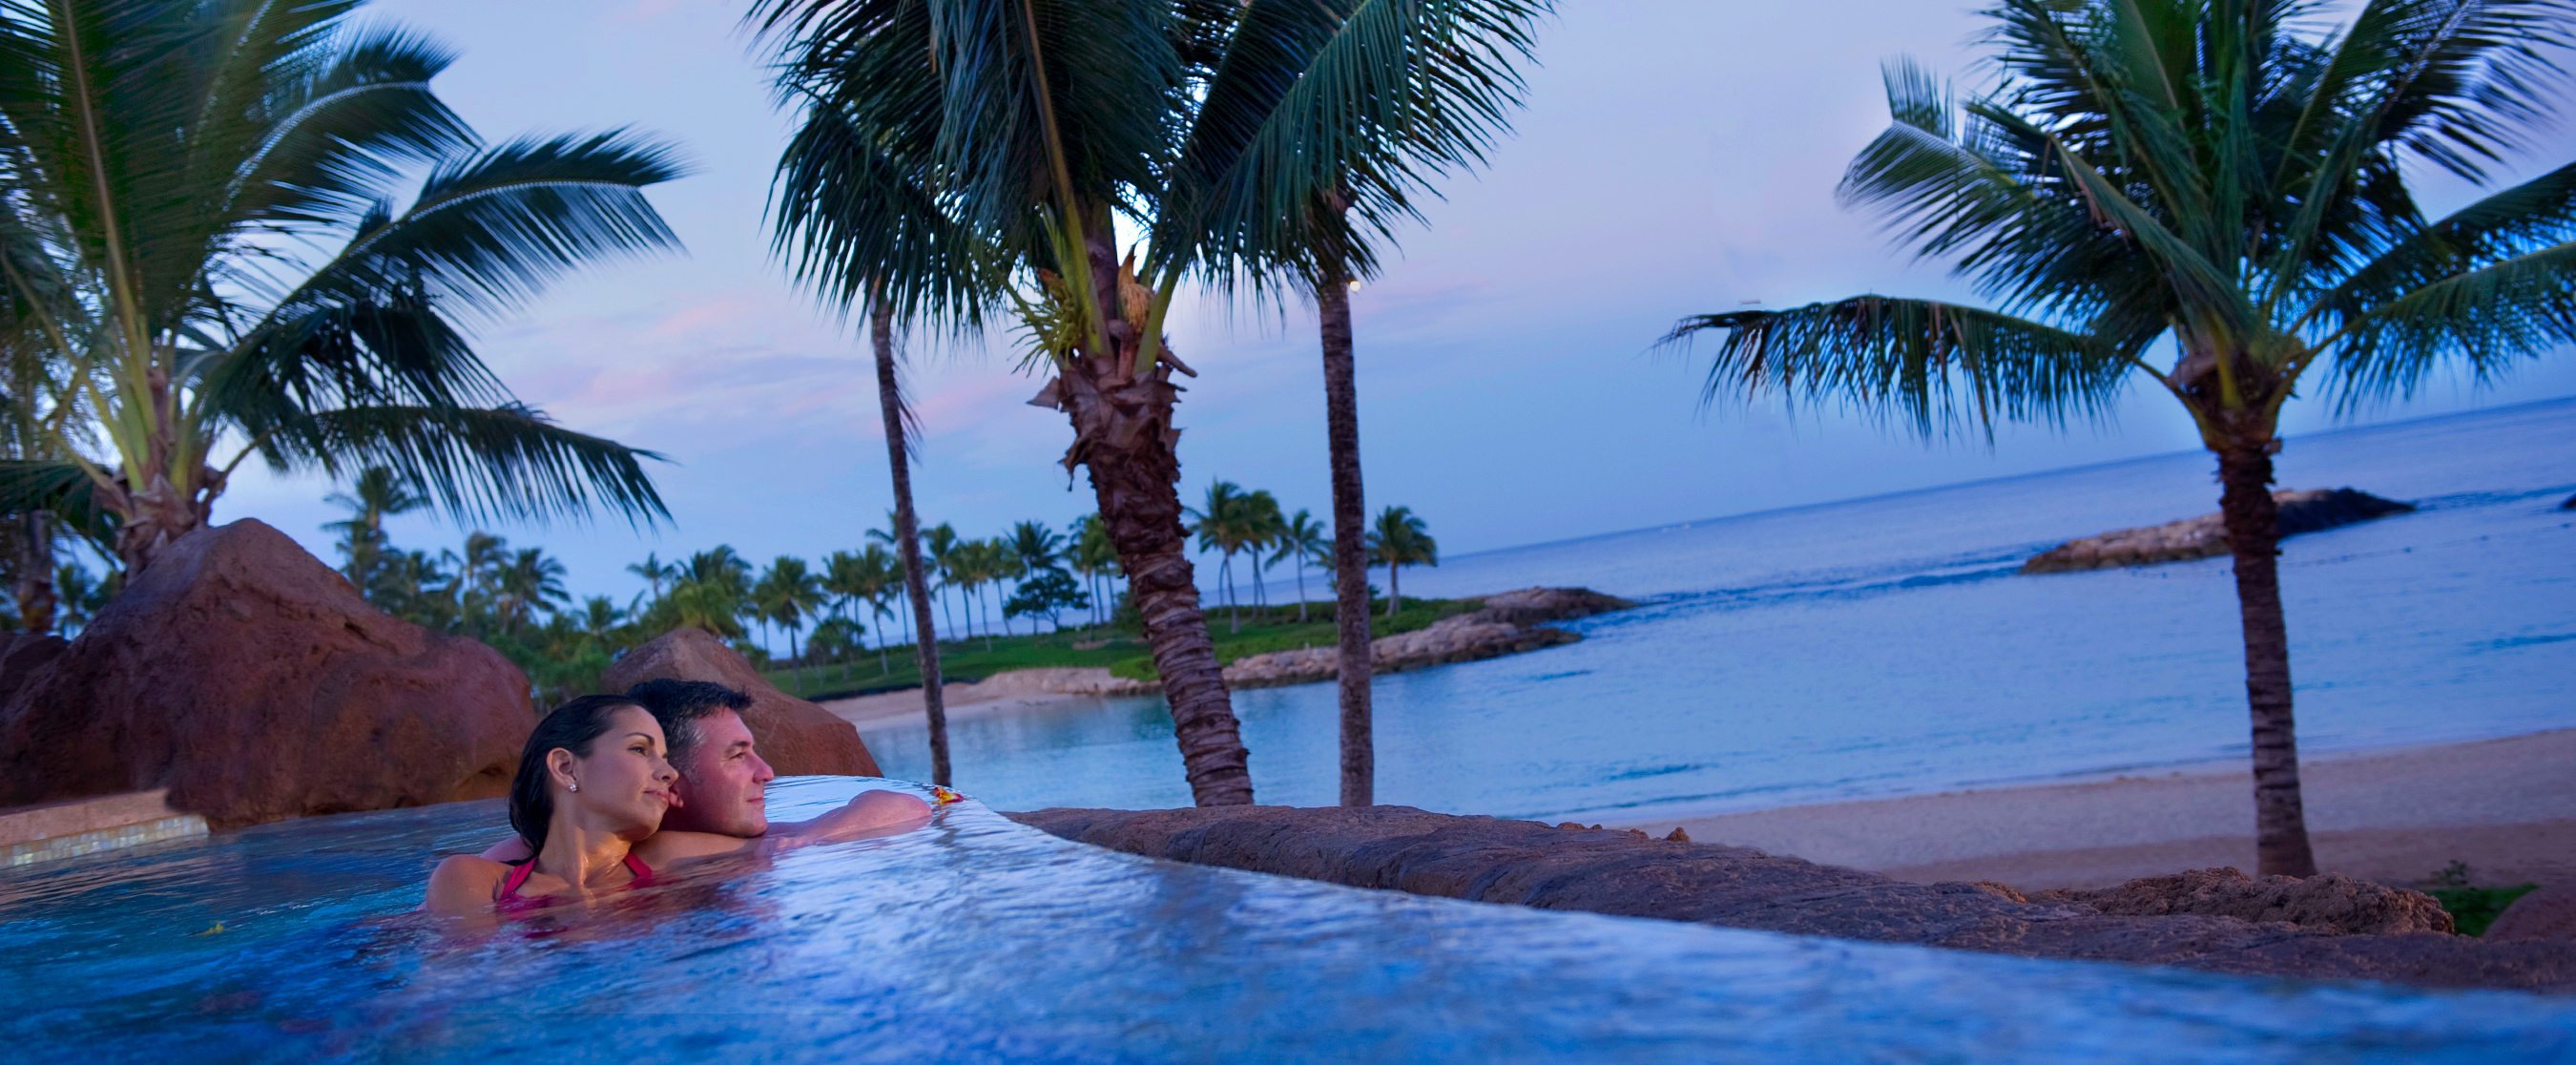 A mature couple leans toward one another in a whirlpool spa while looking longingly out to the ocean